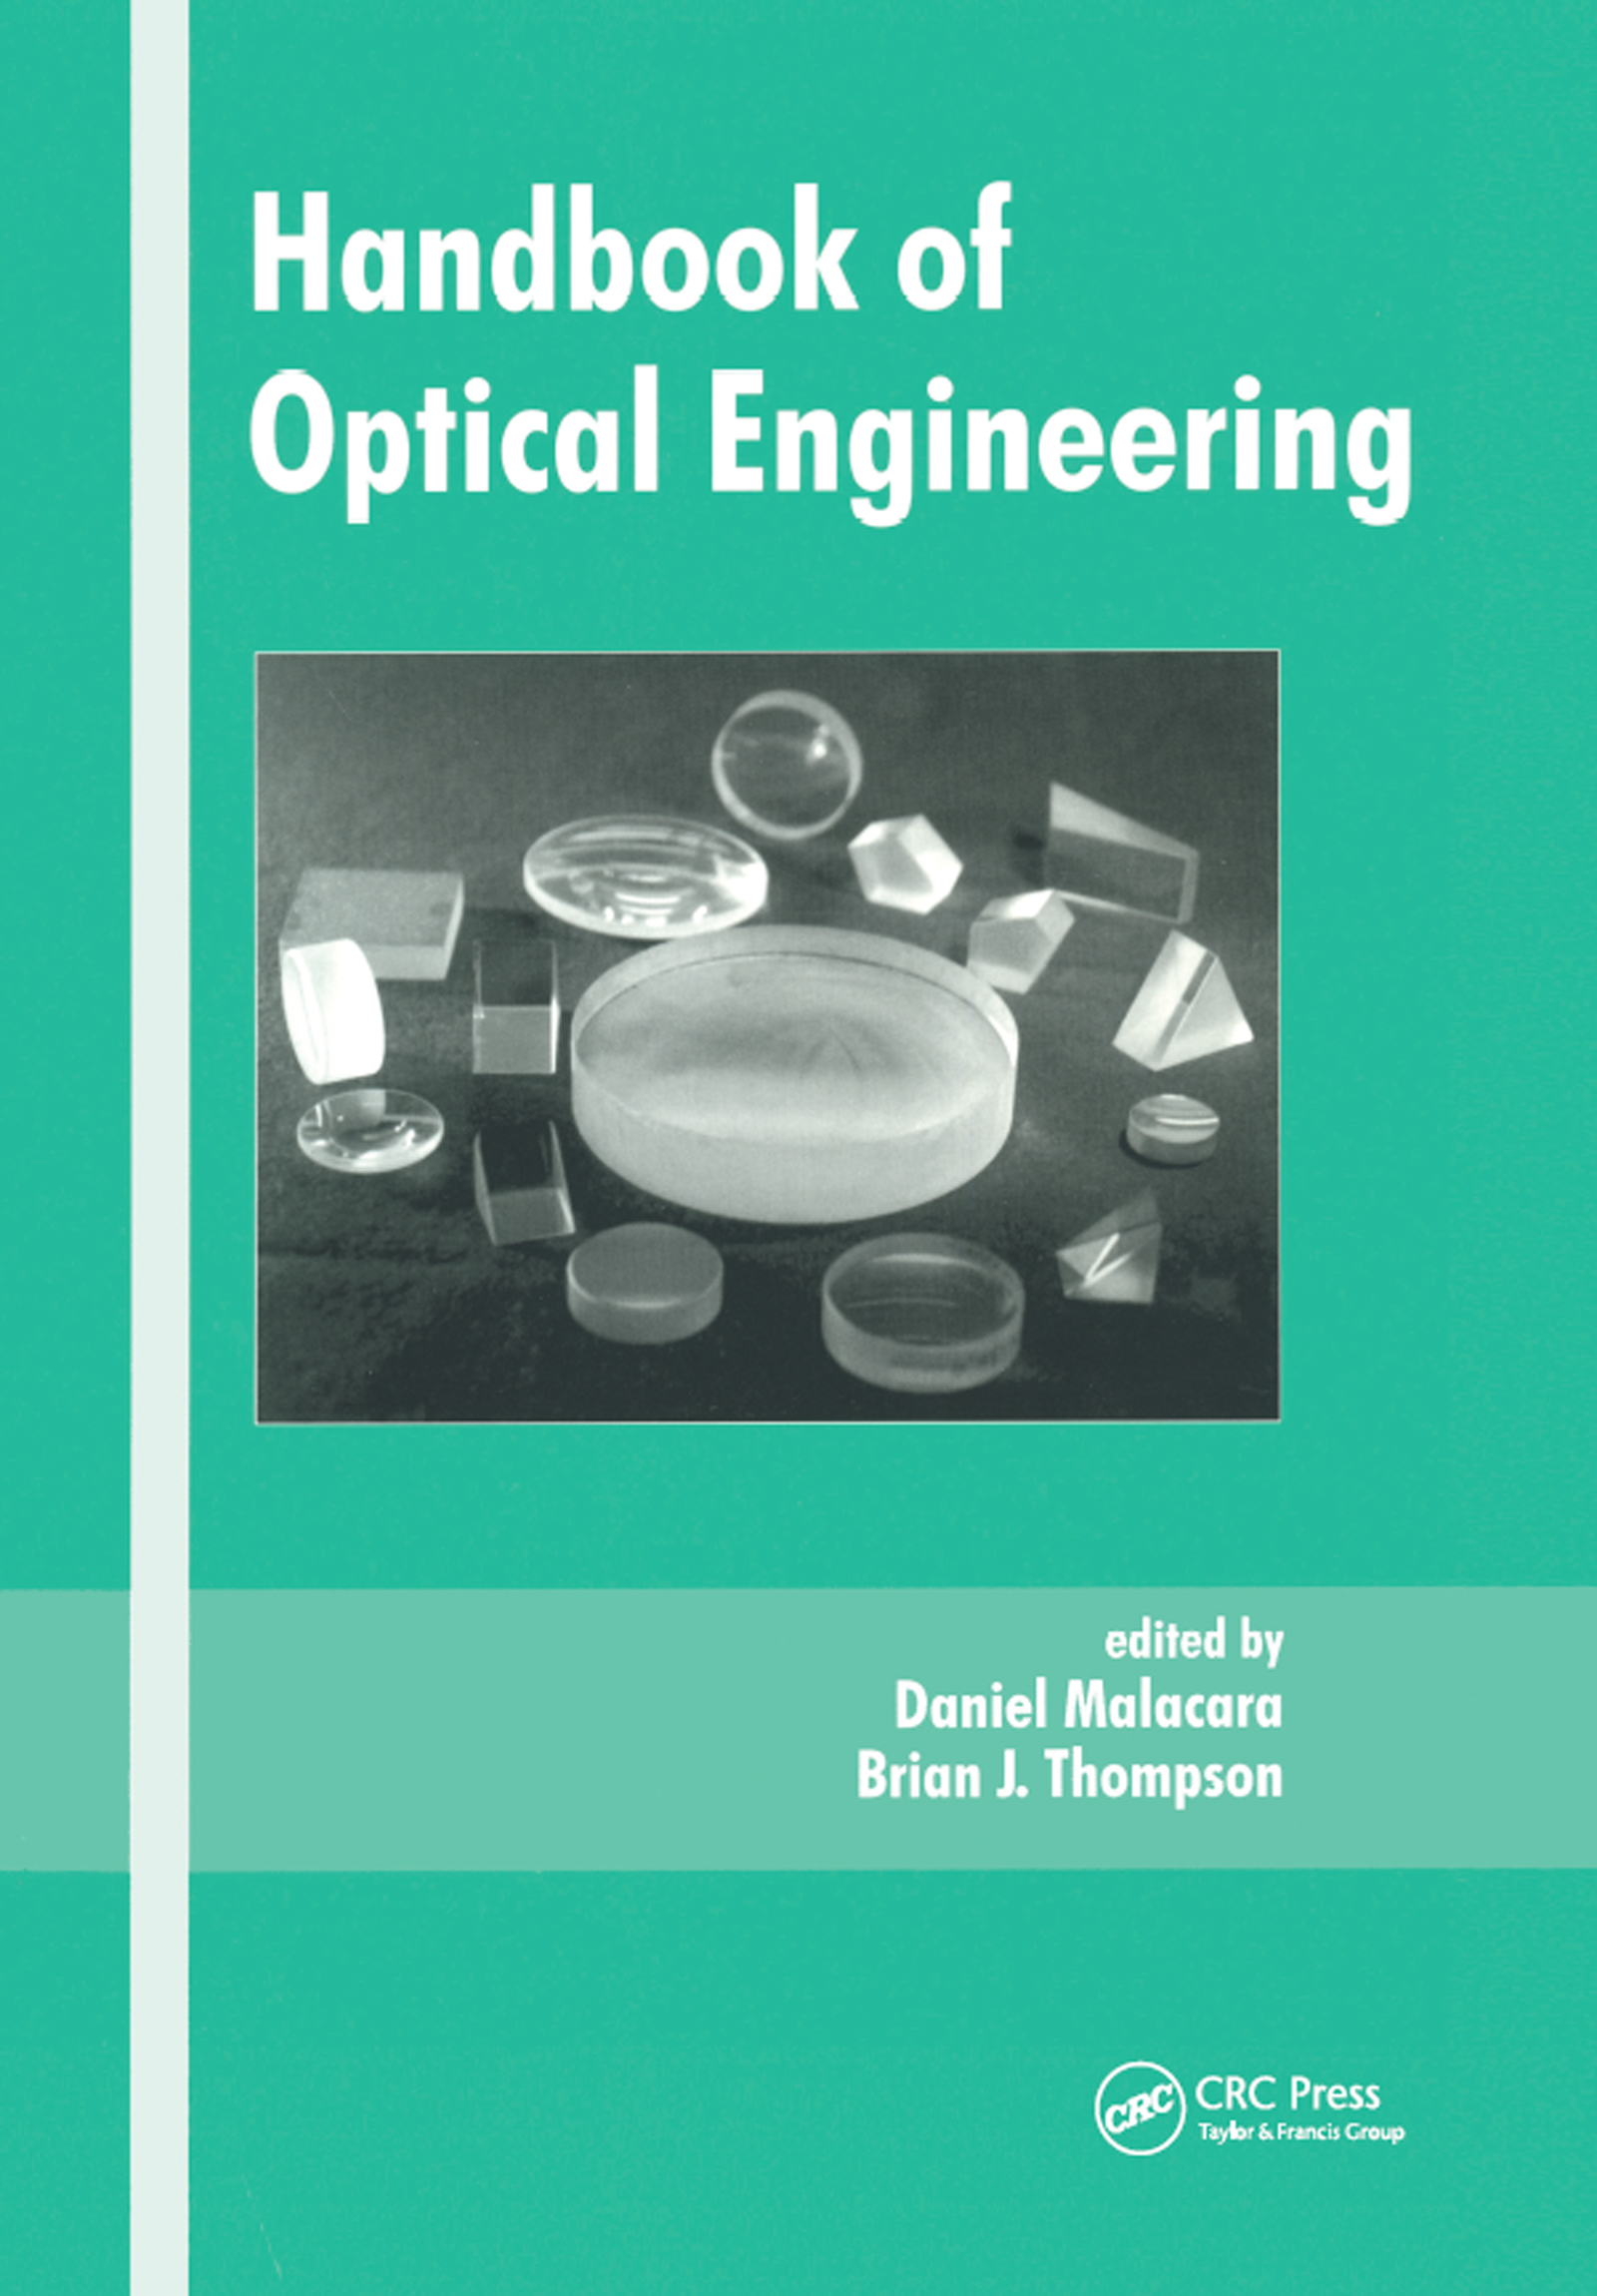 Handbook of Optical Engineering: 1st Edition (Hardback) book cover